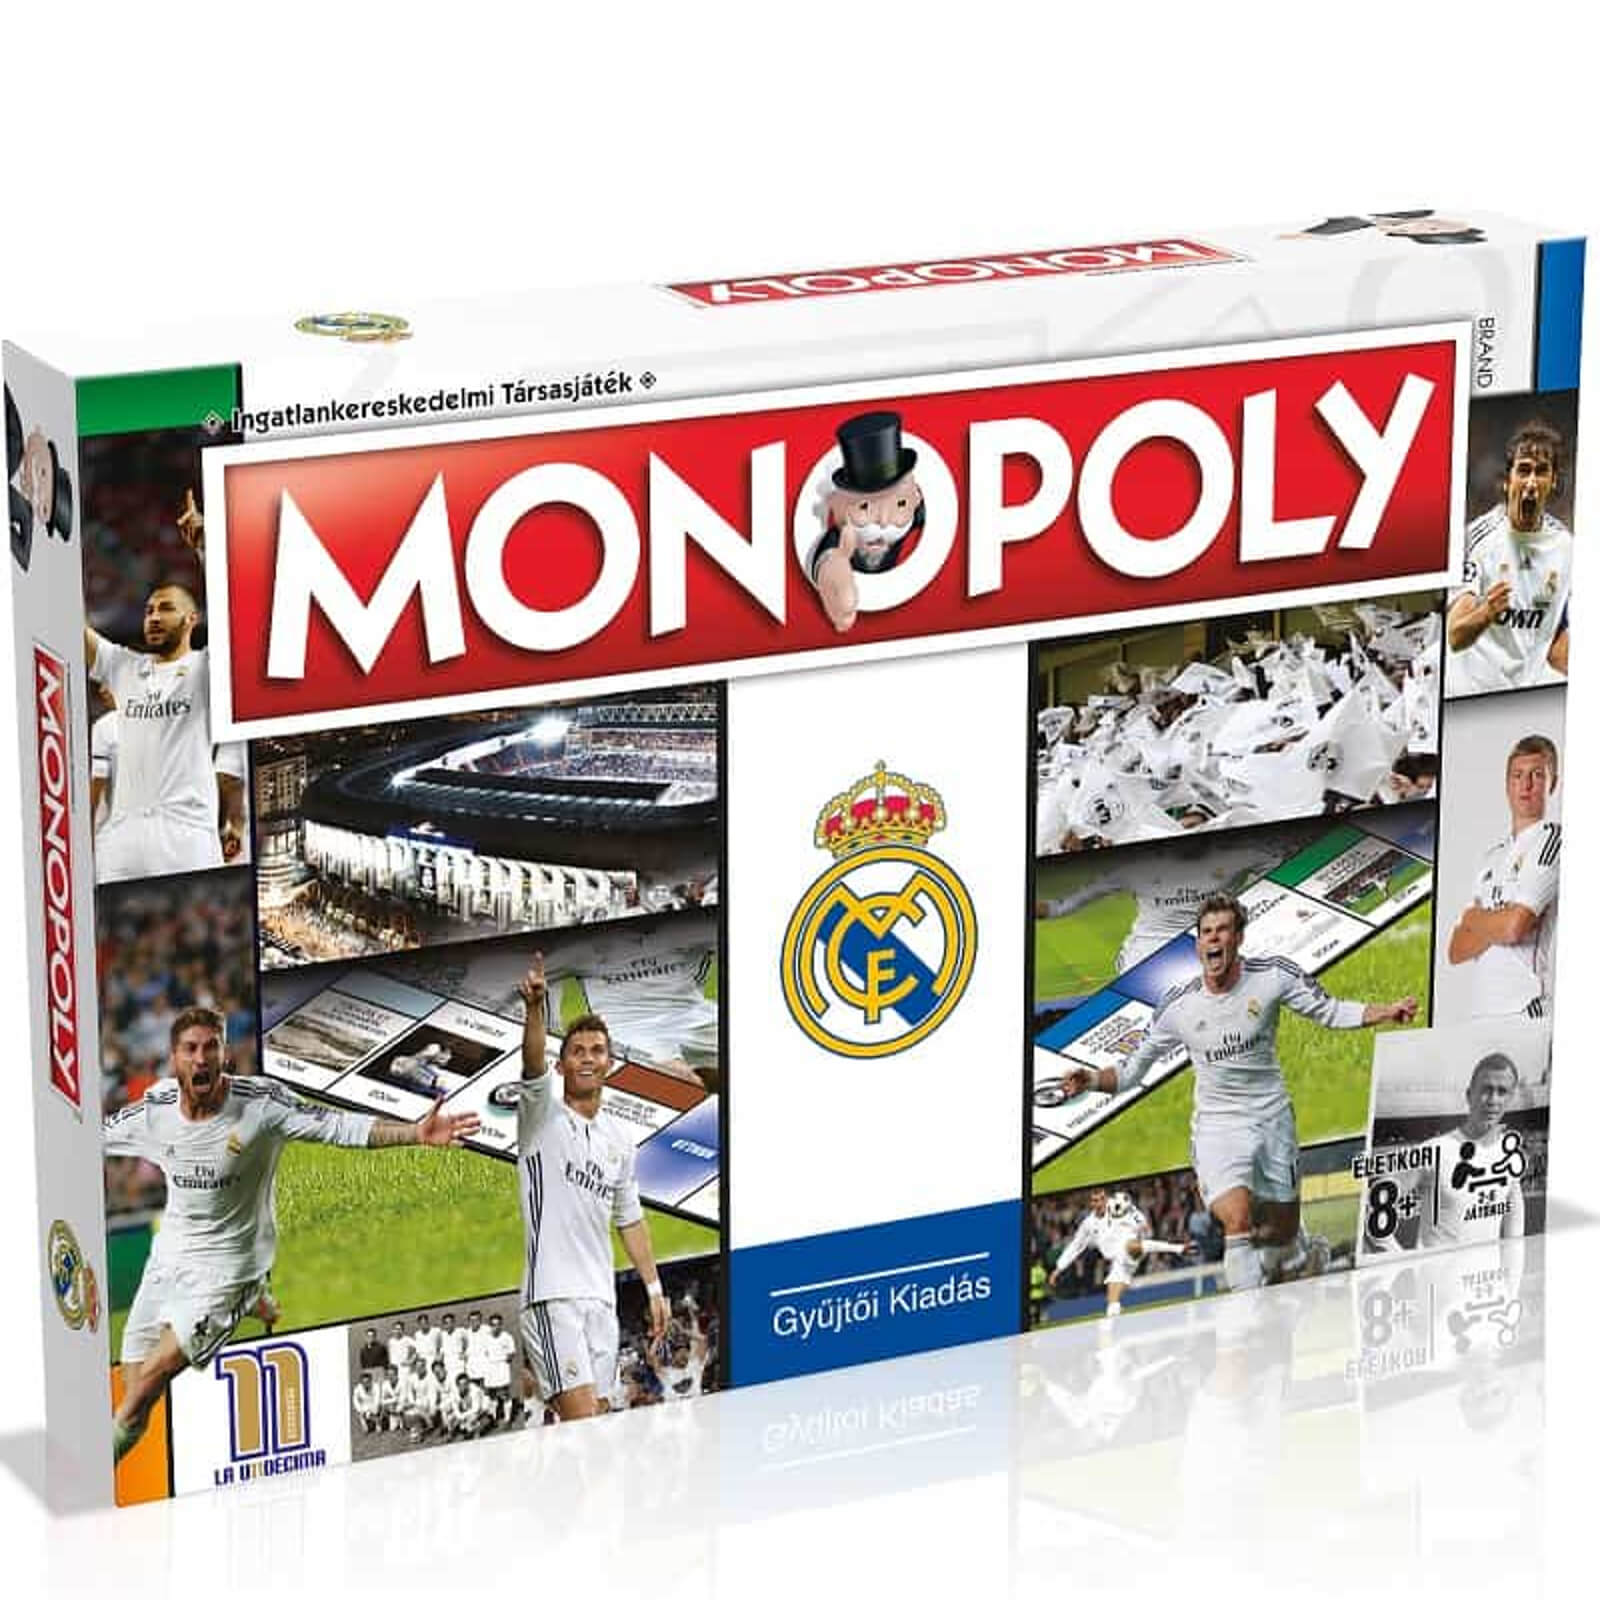 Image of Monopoly Board Game - Real Madrid Edition